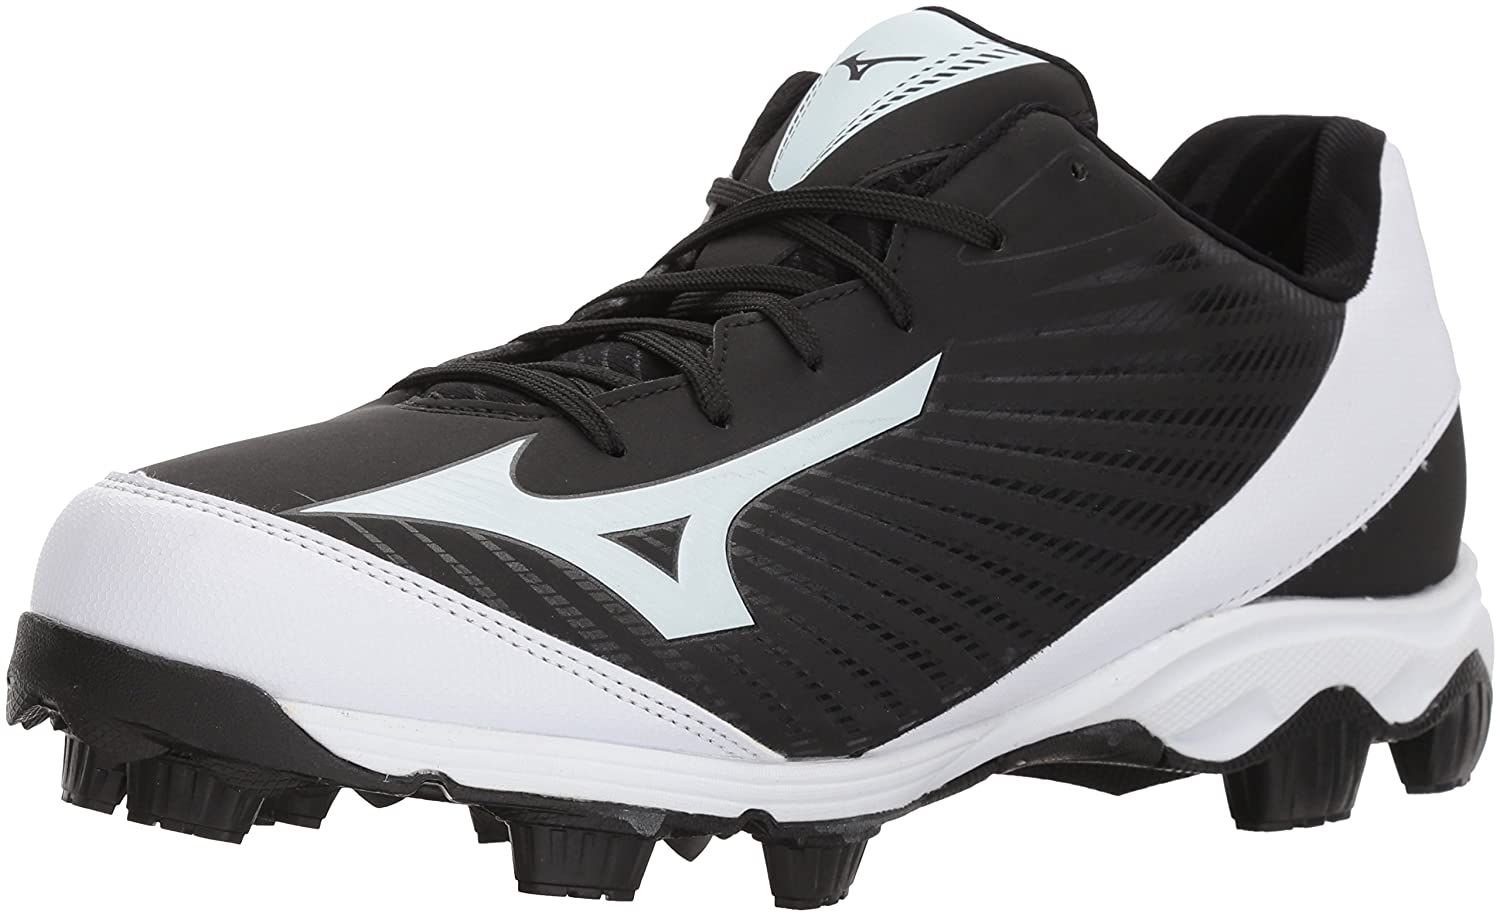 Mizuno (MIZD9) メンズ 9-Spike Advanced Franchise 9 Molded Baseball Cleat Low B072JTNFJV 7 D US|ブラック/ホワイト ブラック/ホワイト 7 D US